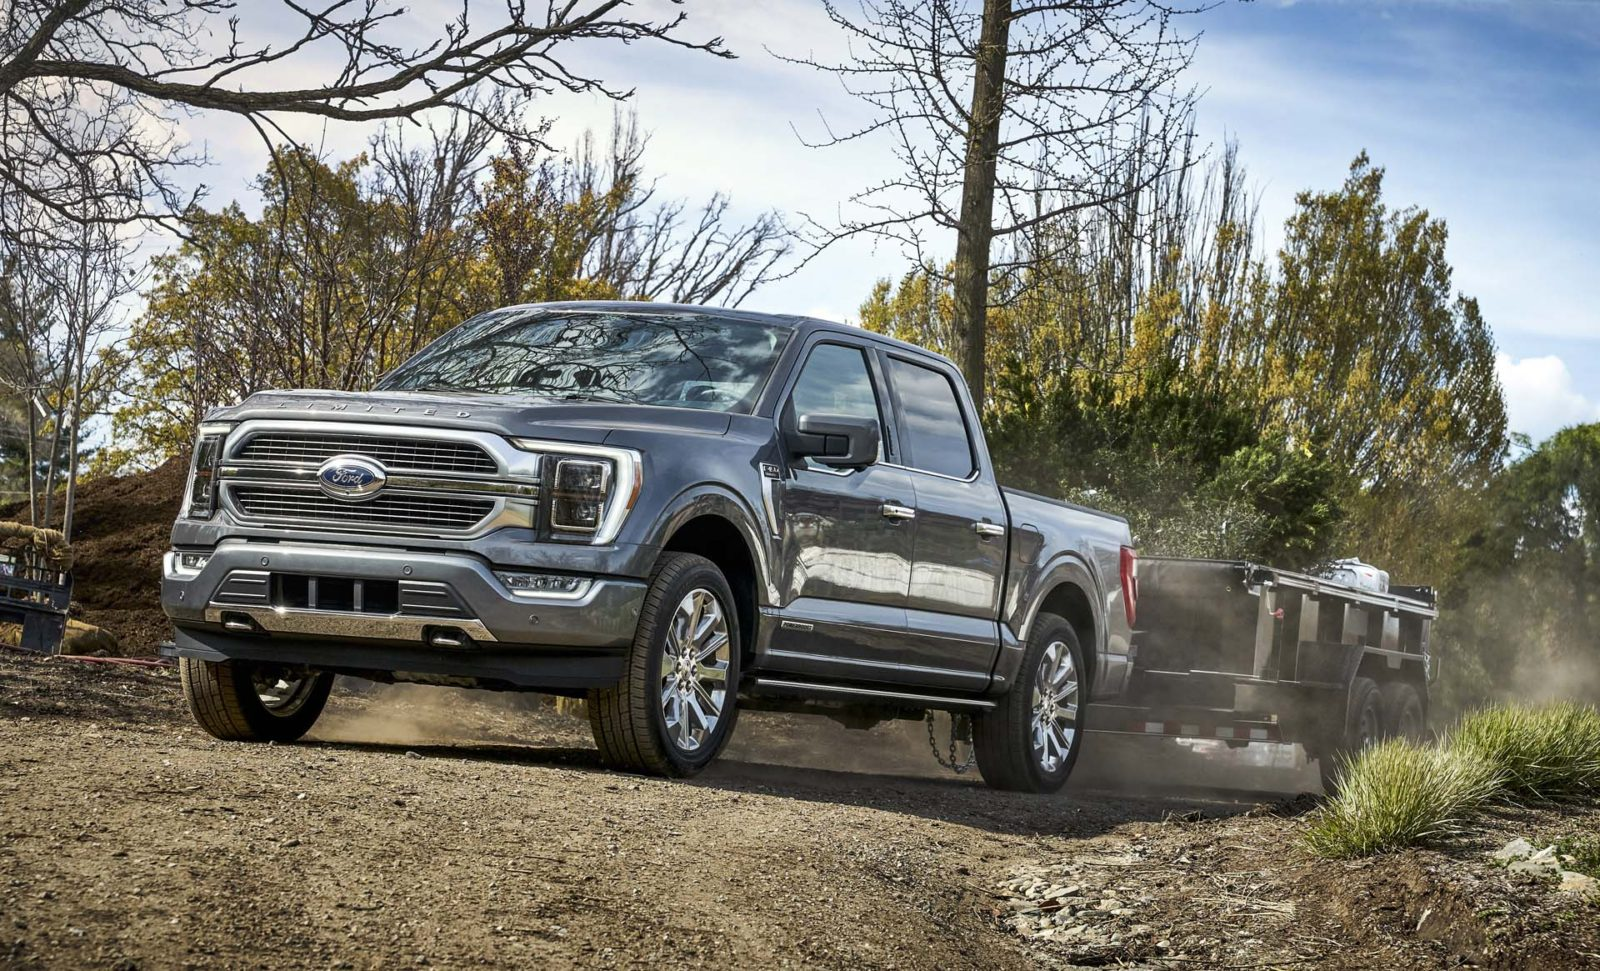 2021-ford-f-150-simplifies-towing-with-onboard-scales-that-measure-payload-and-tongue-weight